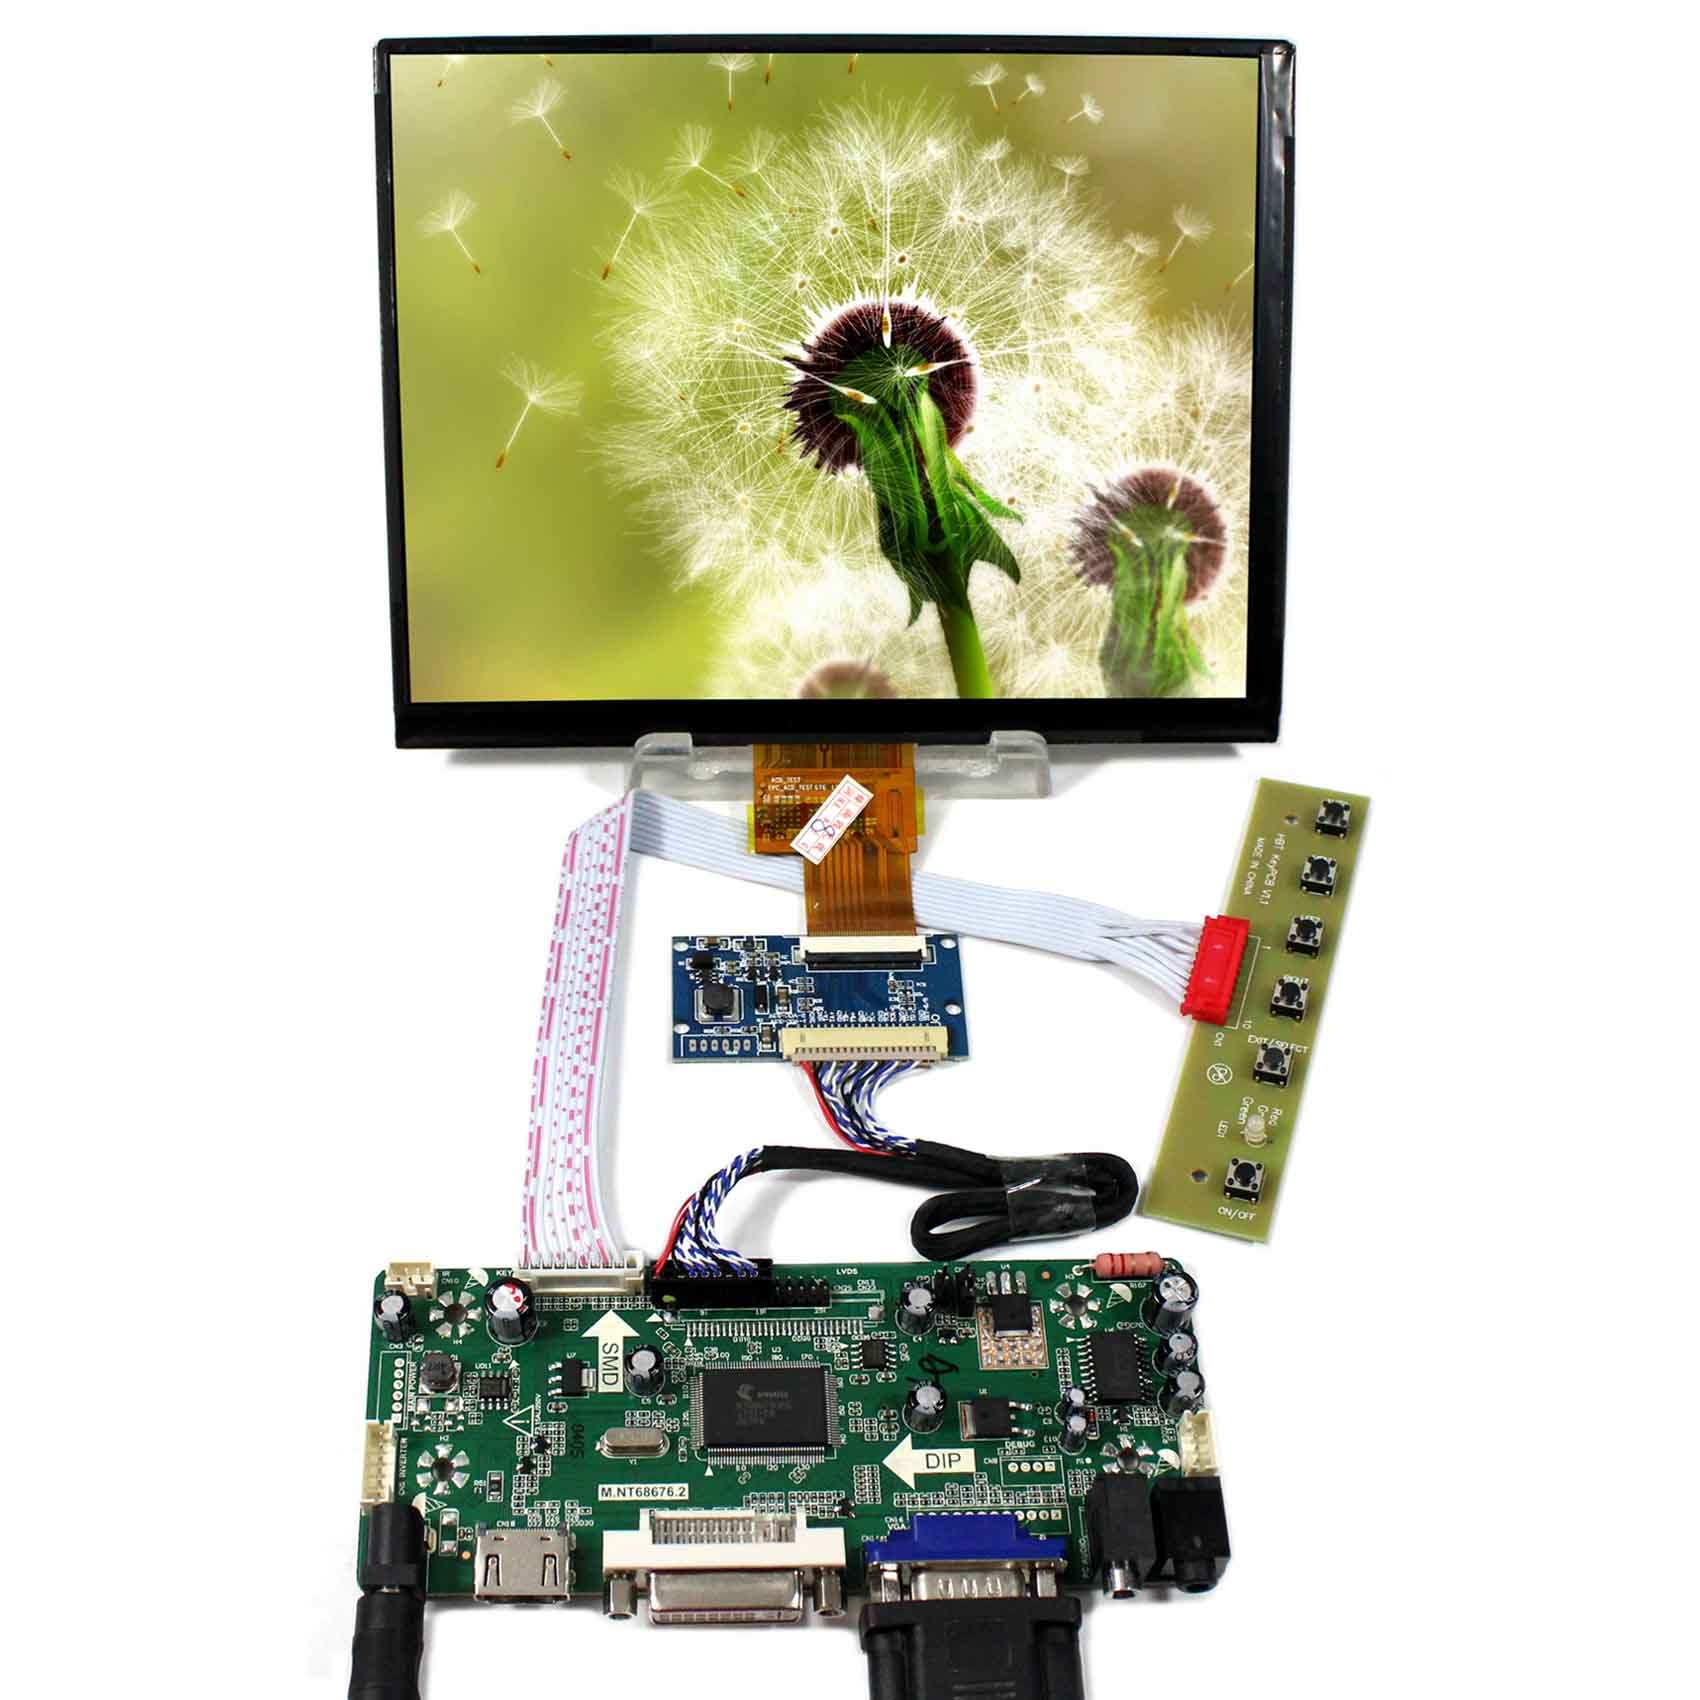 HDMI+DVI+VGA+Audio LCD Control Board+8inch 1024x768 HJ080IA-01E IPS LCD Panel new original package innolux 8 inch ips high definition lcd screen hj080ia 01e m1 a1 32001395 00